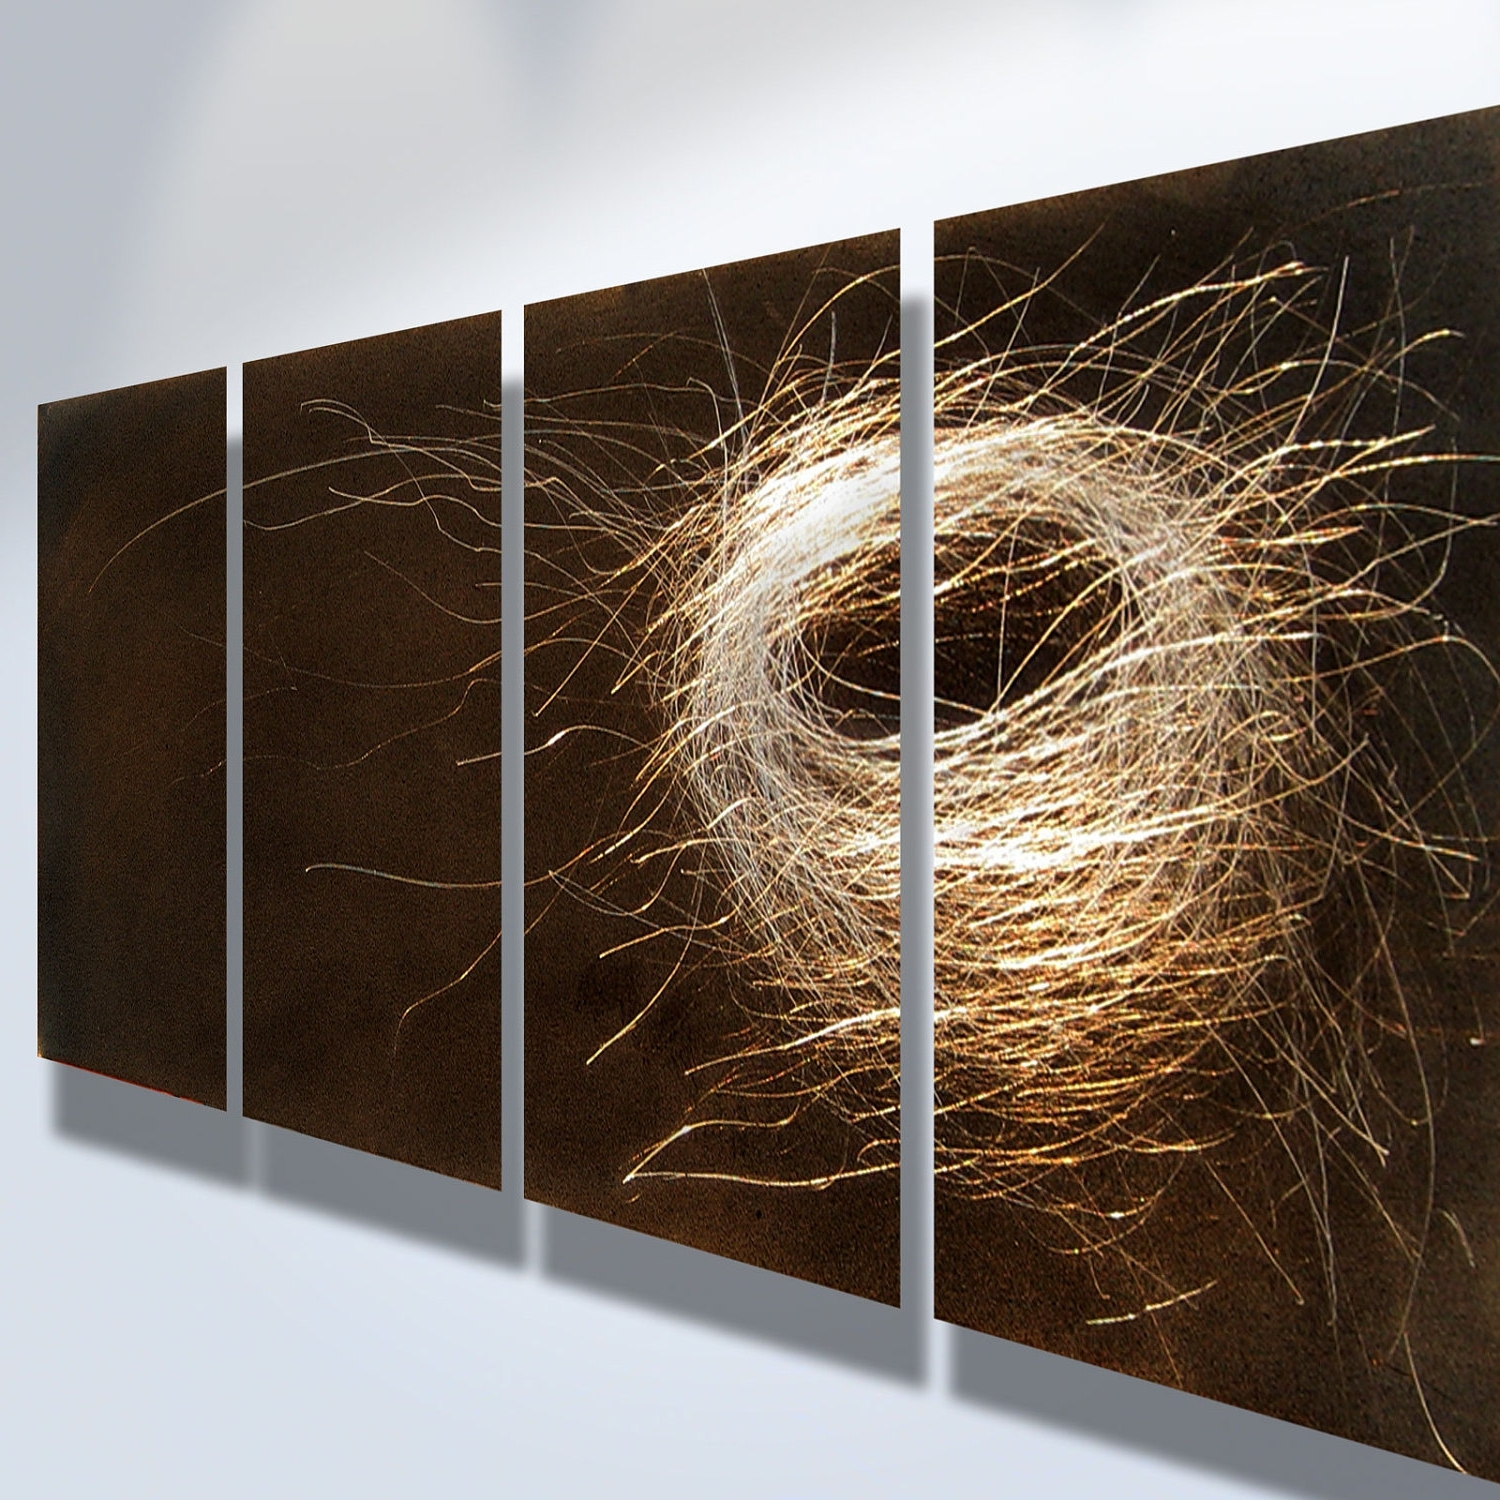 Widely Used Metal Art Wall Art Decor Abstract Contemporary Modern Sculpture Pertaining To Contemporary Metal Wall Art Sculpture (View 15 of 15)